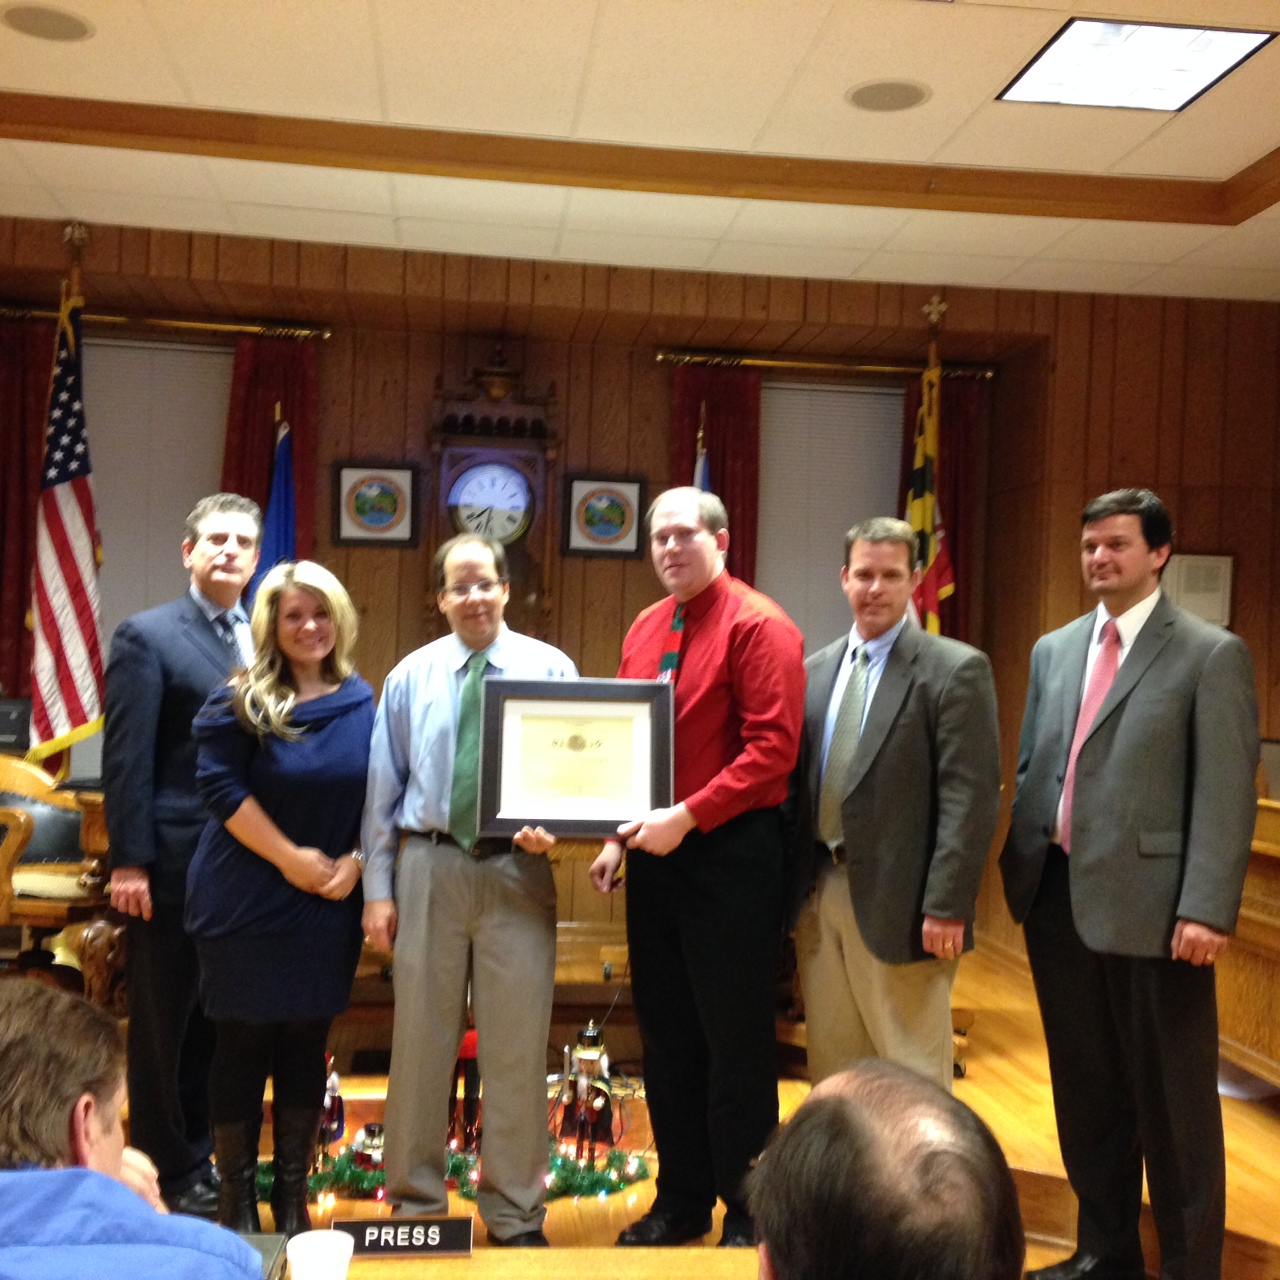 Mayor Grim Presents a Certificate of Recognition to Larry Jackson, Director of the Allegany High Sch